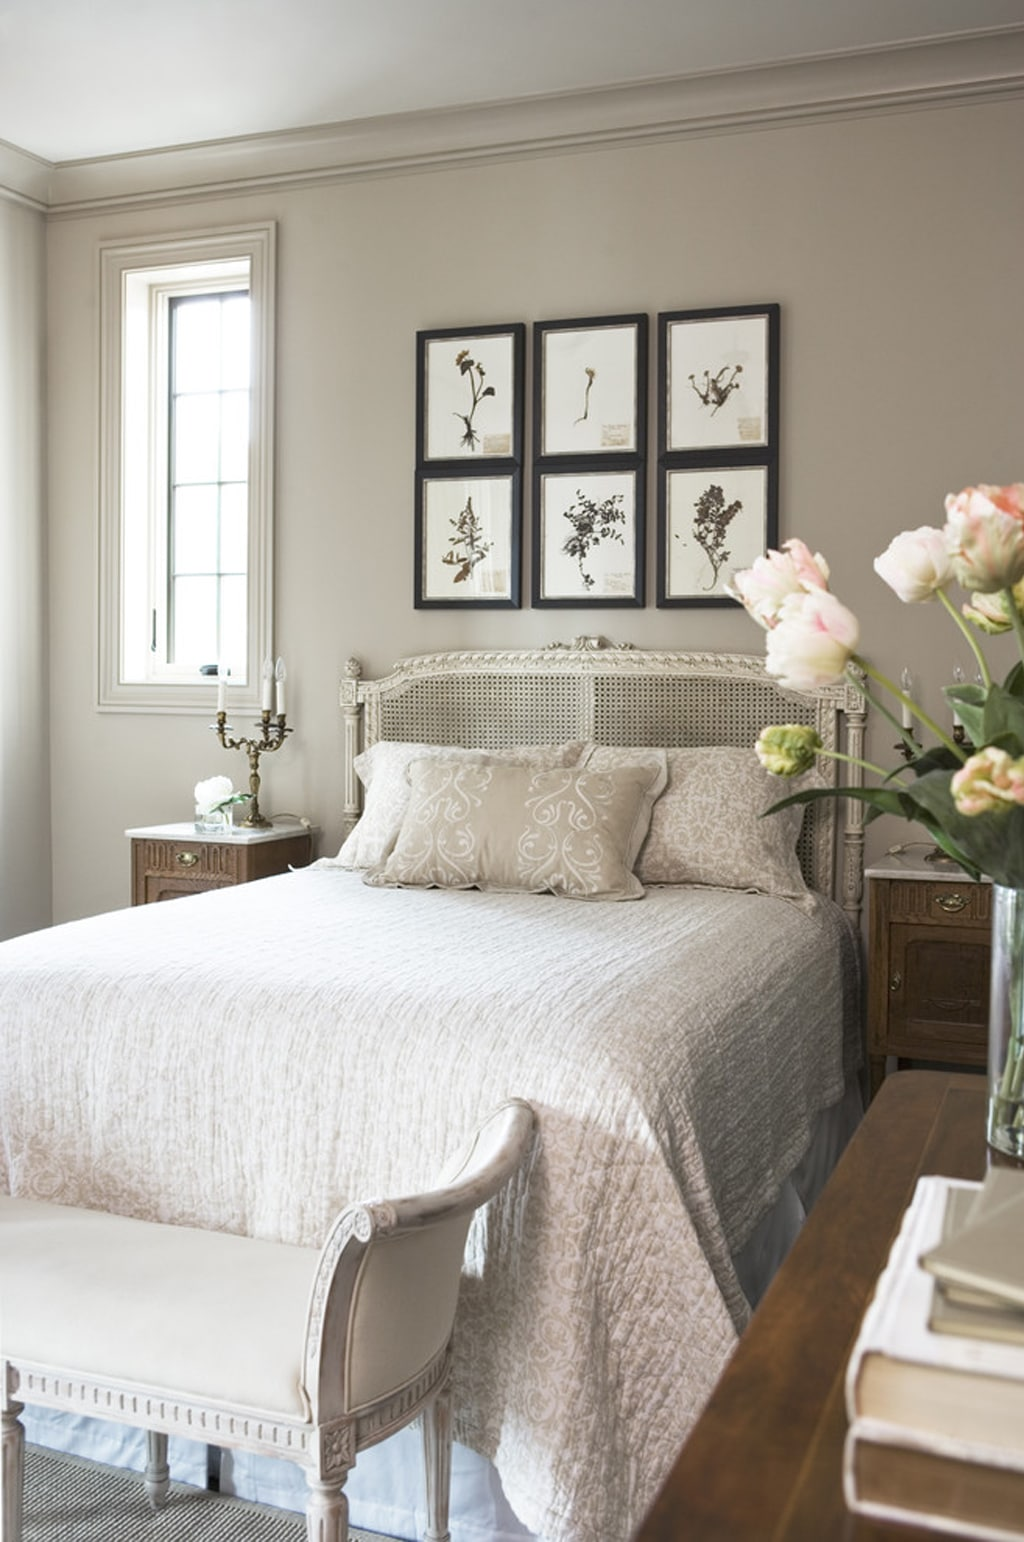 Anew Gray on walls and trim in a bedroom by Lisa McDougald Design. Rachael Boling Photography - Color Wheel Update: Anew Gray